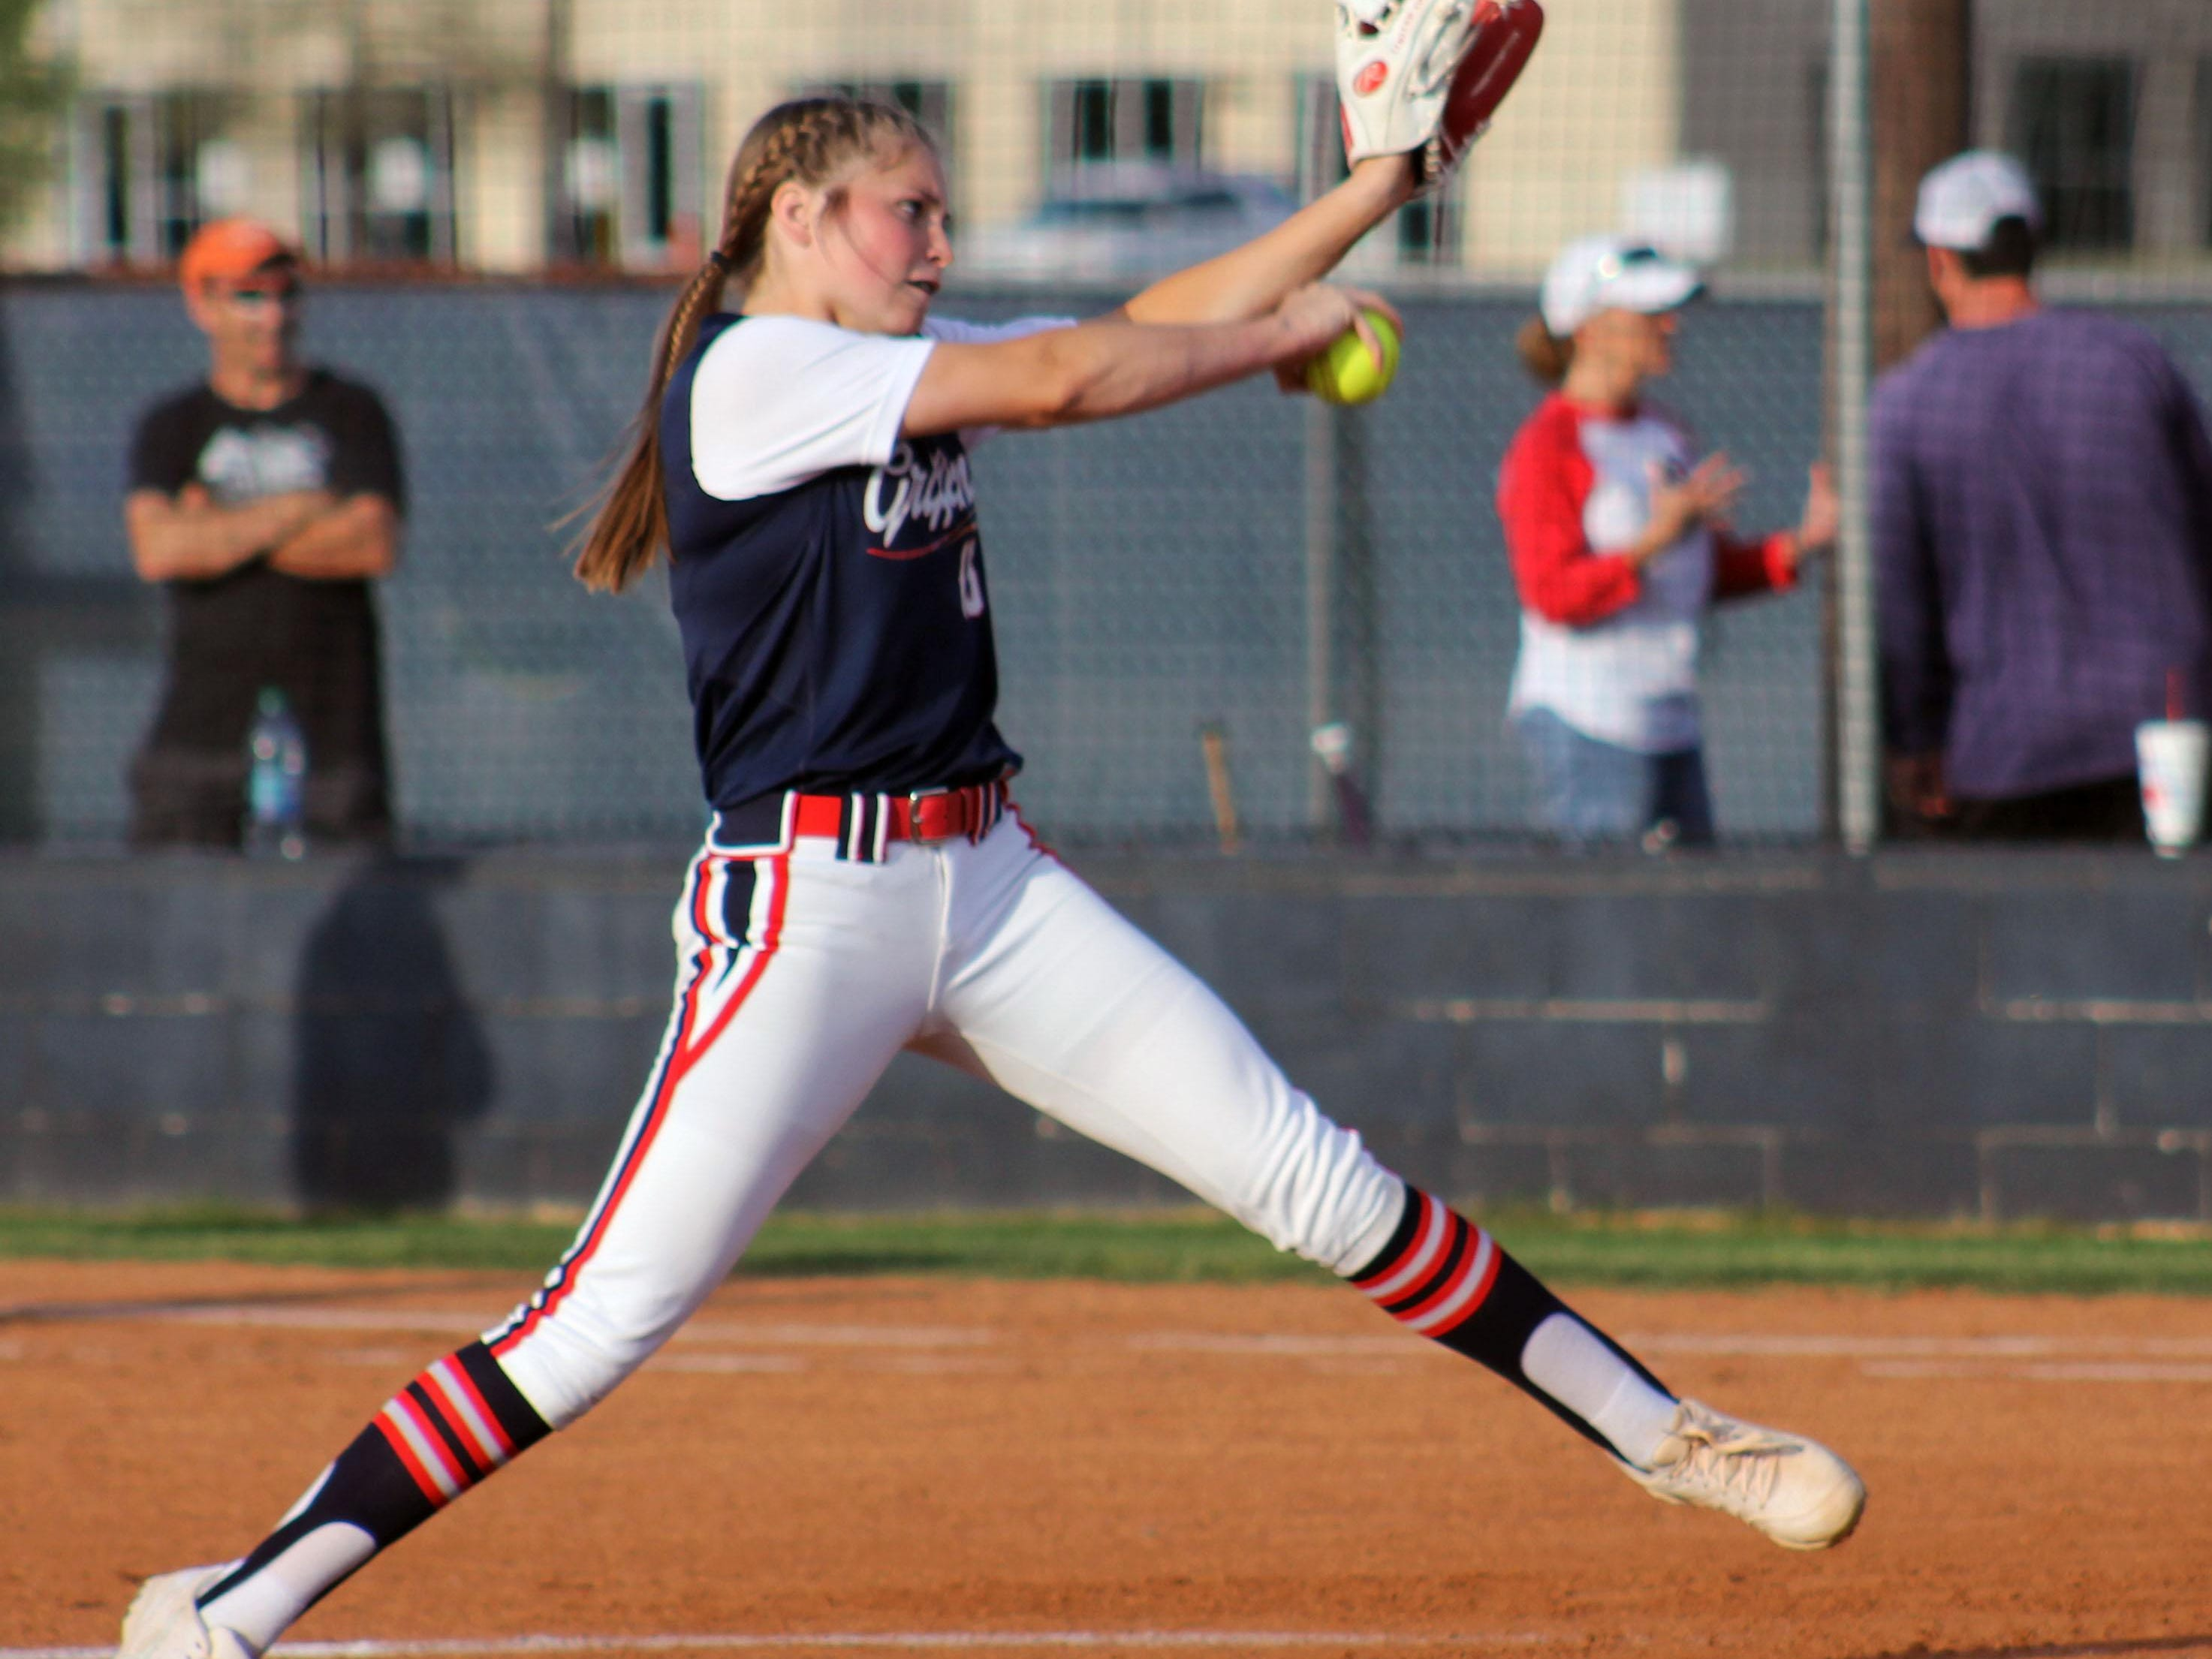 North DeSoto pitcher EC Delafield throws a pitch during Thursday's game.